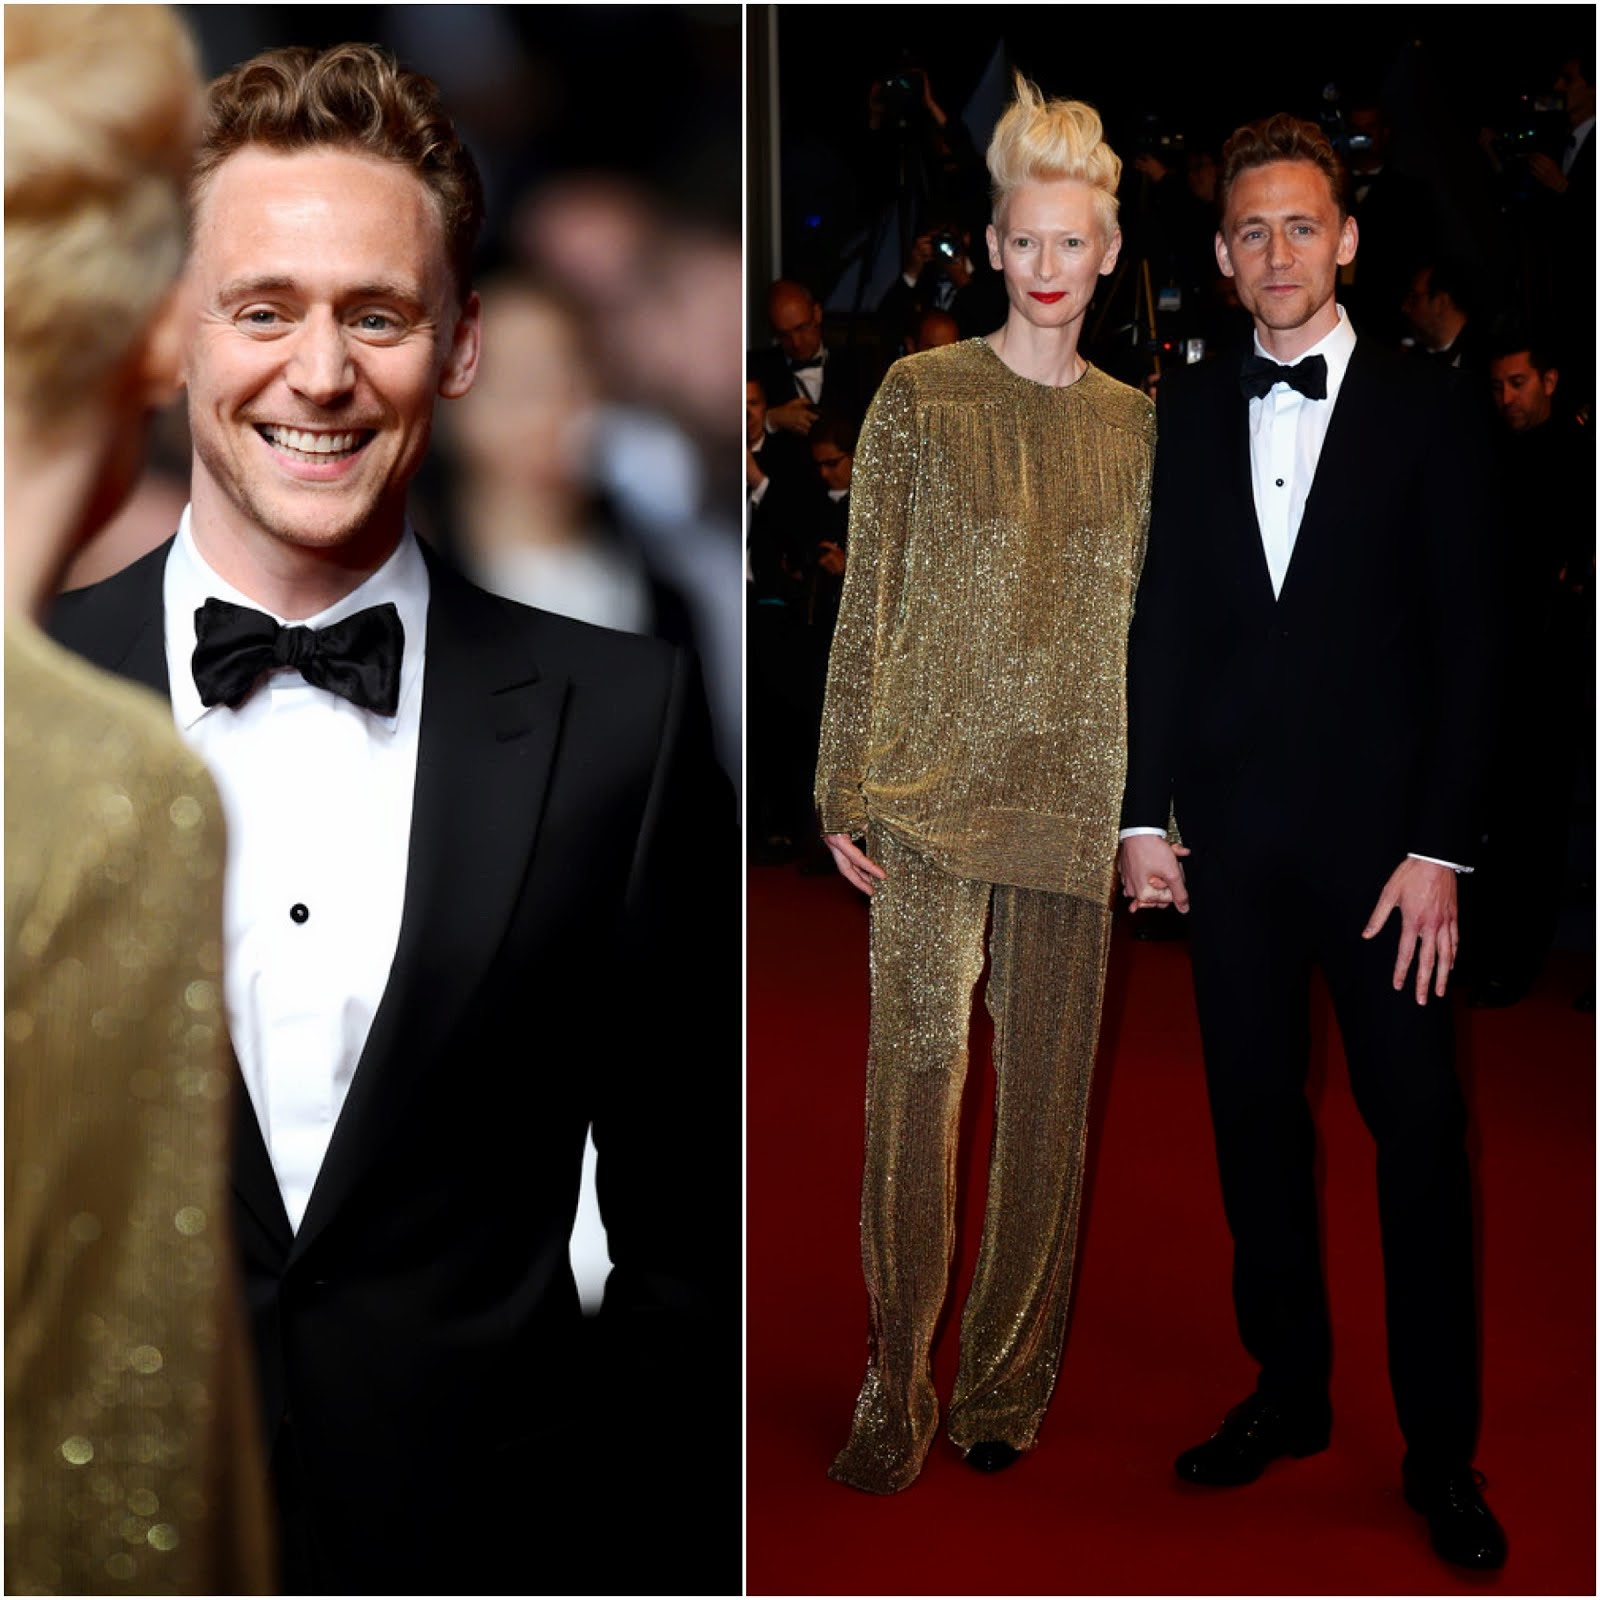 00O00 Menswear Blog: Tom Hiddleston in Alexander McQueen - 'Only Lovers Left Alive' premiere during The 66th Annual Cannes Film Festival May 2013